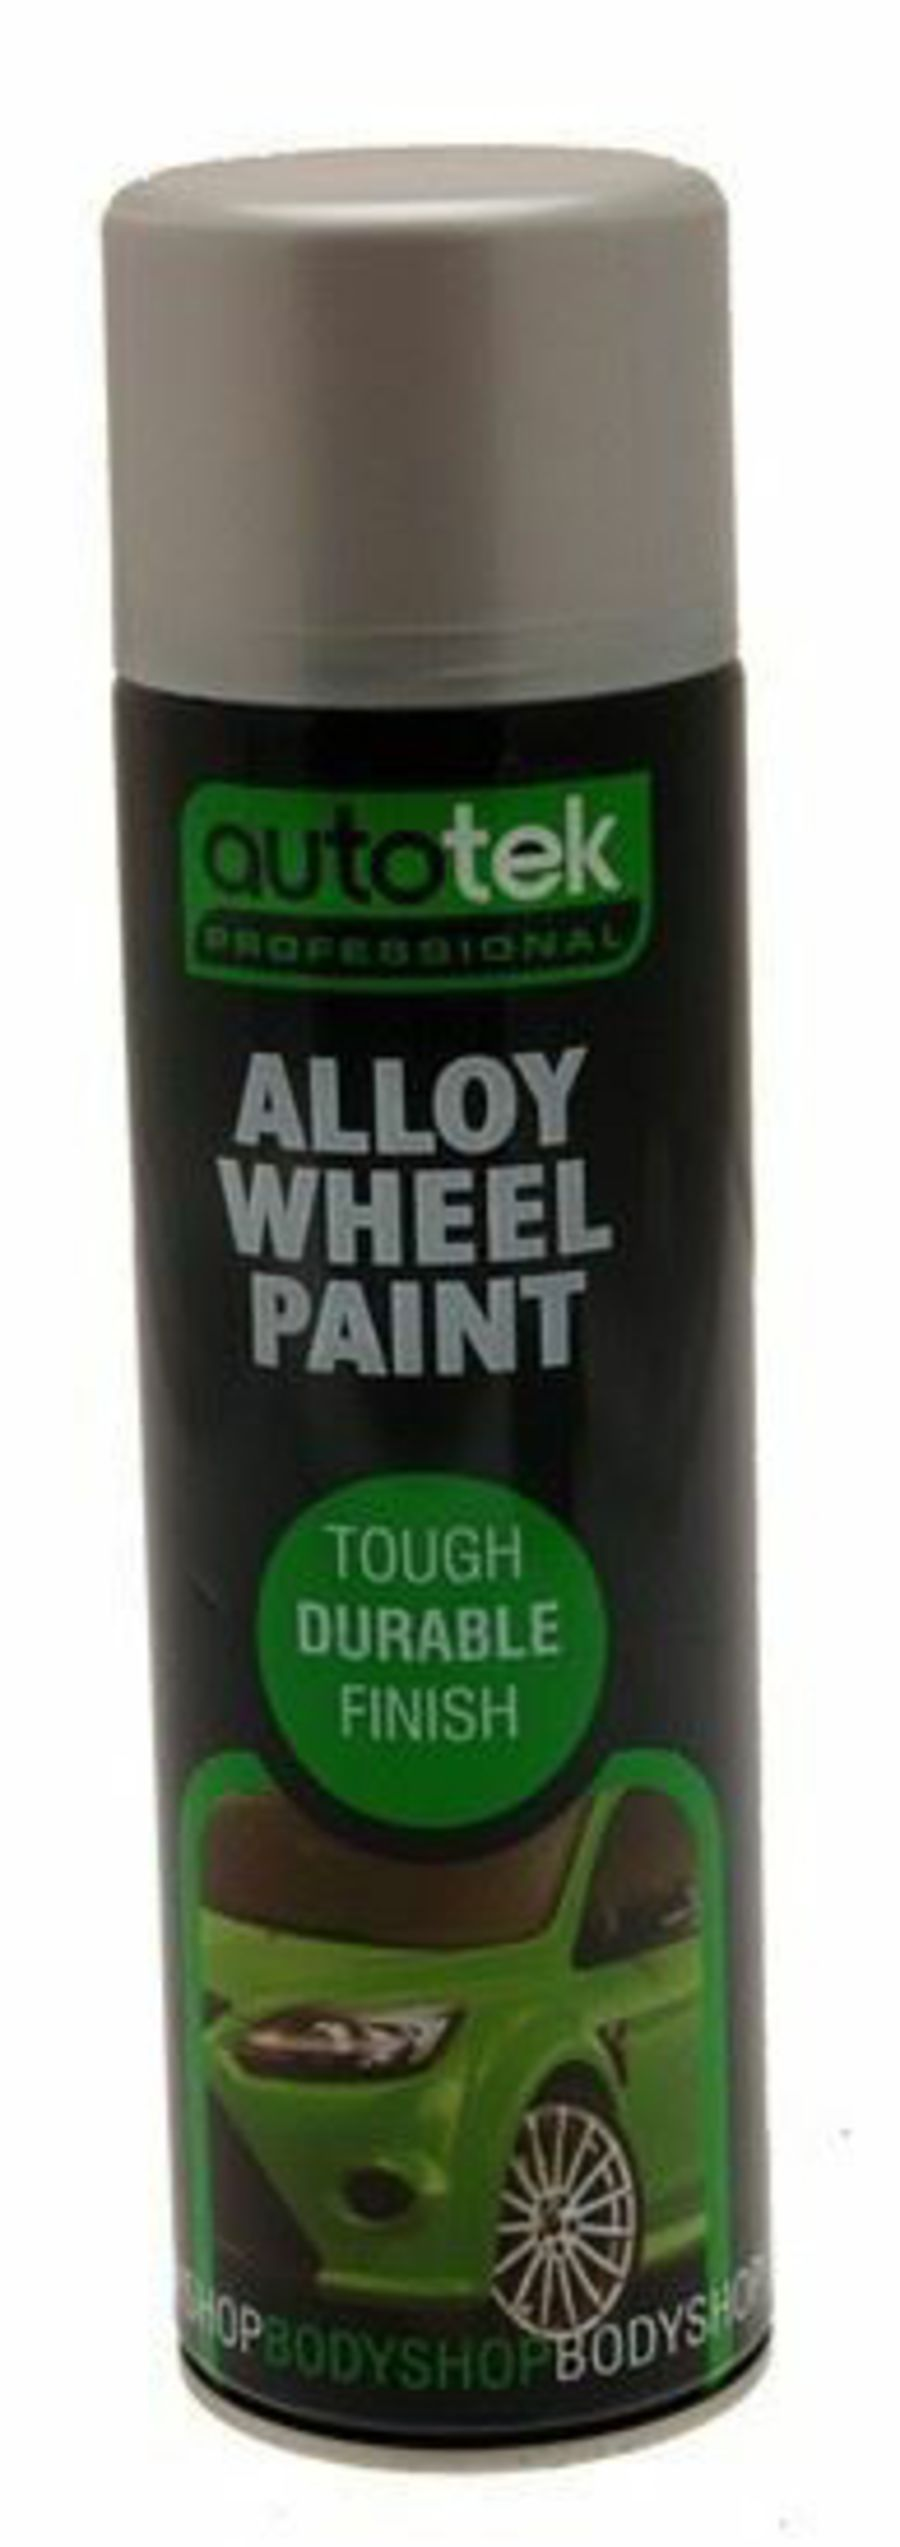 Alloy Wheel Paint - 500ml